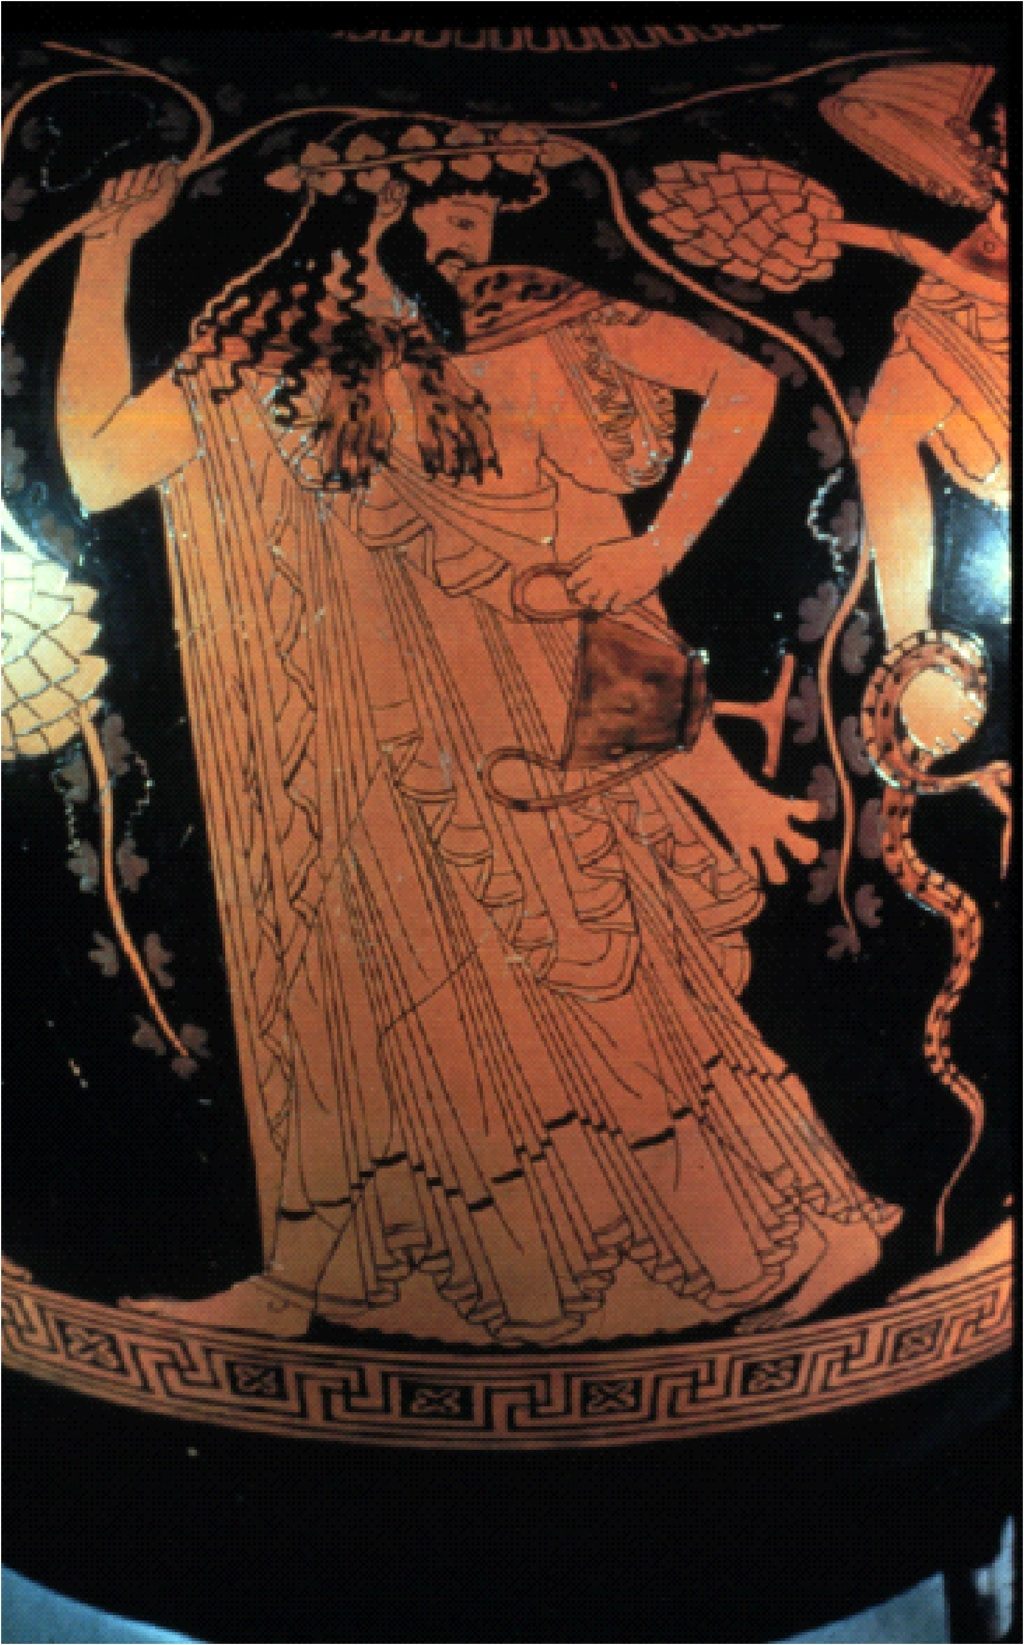 anything excess negative oedipus king sophocles Tragedy and enlightenment:  chapter 2 considers sophocles' oedipus tyrannos in terms of enlightenment  wishing he had never come before the king oedipus,.